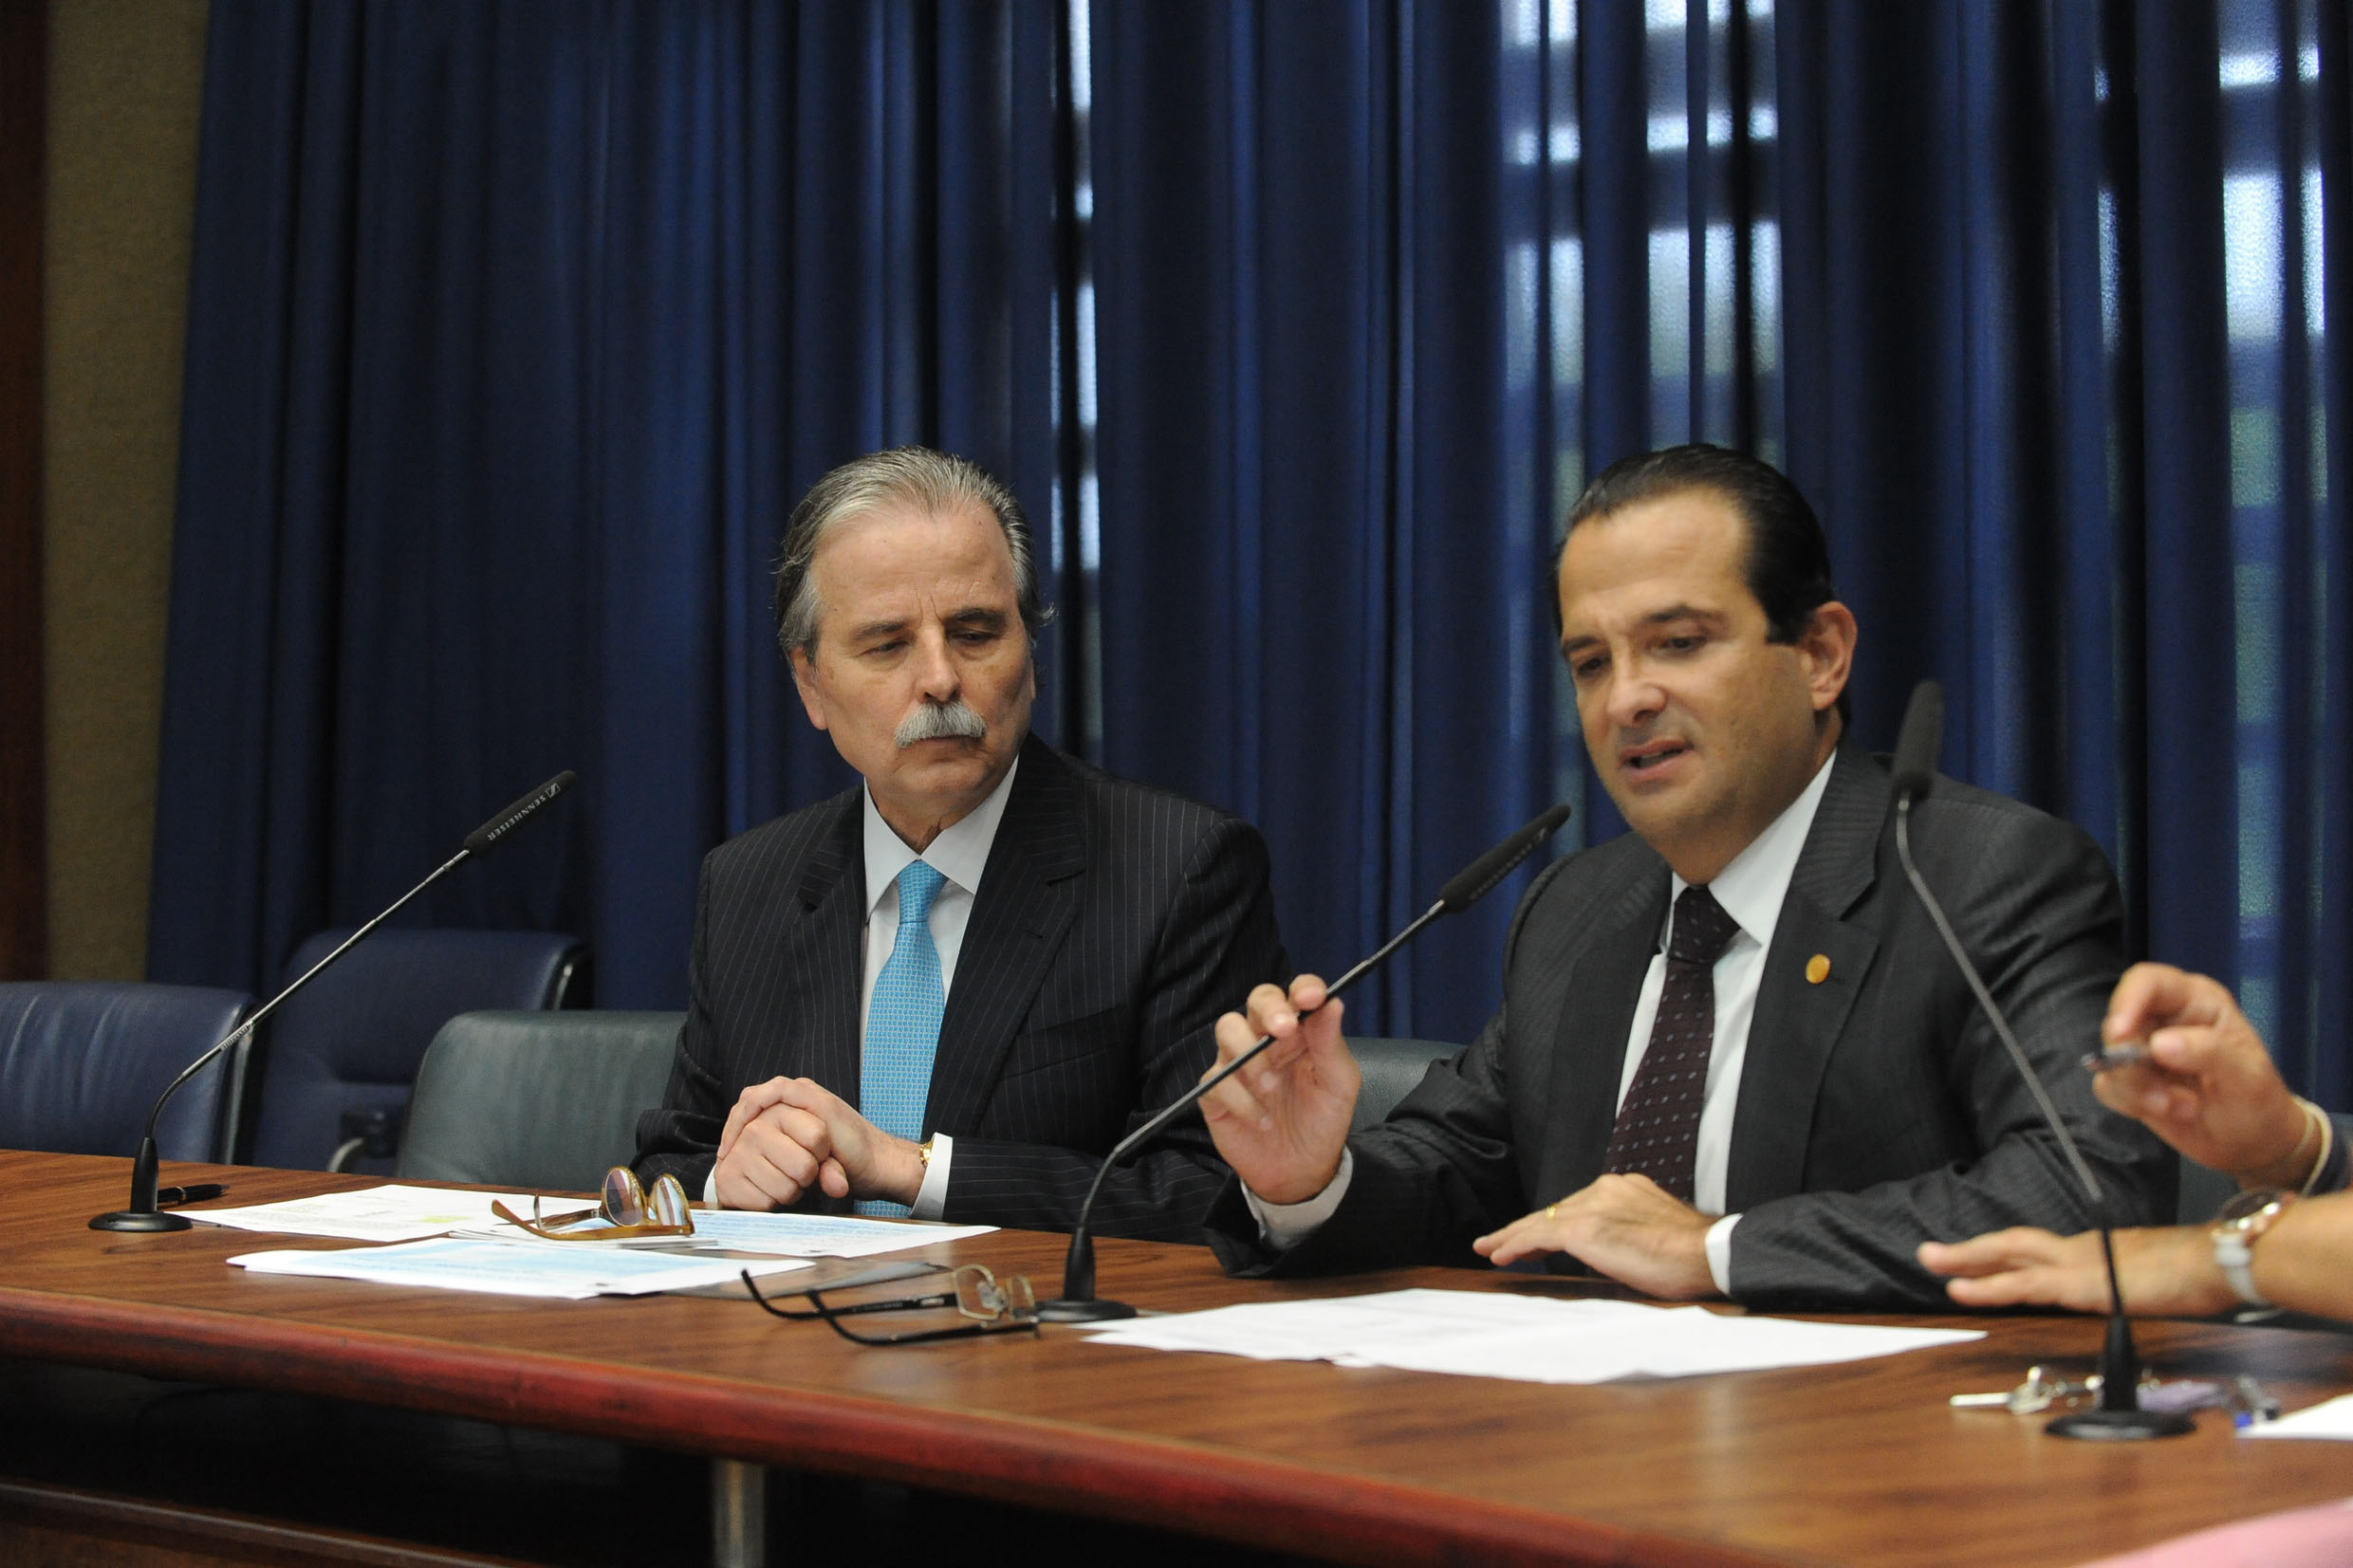 Renato Martins Costa e Edmir Chedid<a style='float:right' href='https://www3.al.sp.gov.br/repositorio/noticia/N-05-2018/fg222264.jpg' target=_blank><img src='/_img/material-file-download-white.png' width='14px' alt='Clique para baixar a imagem'></a>